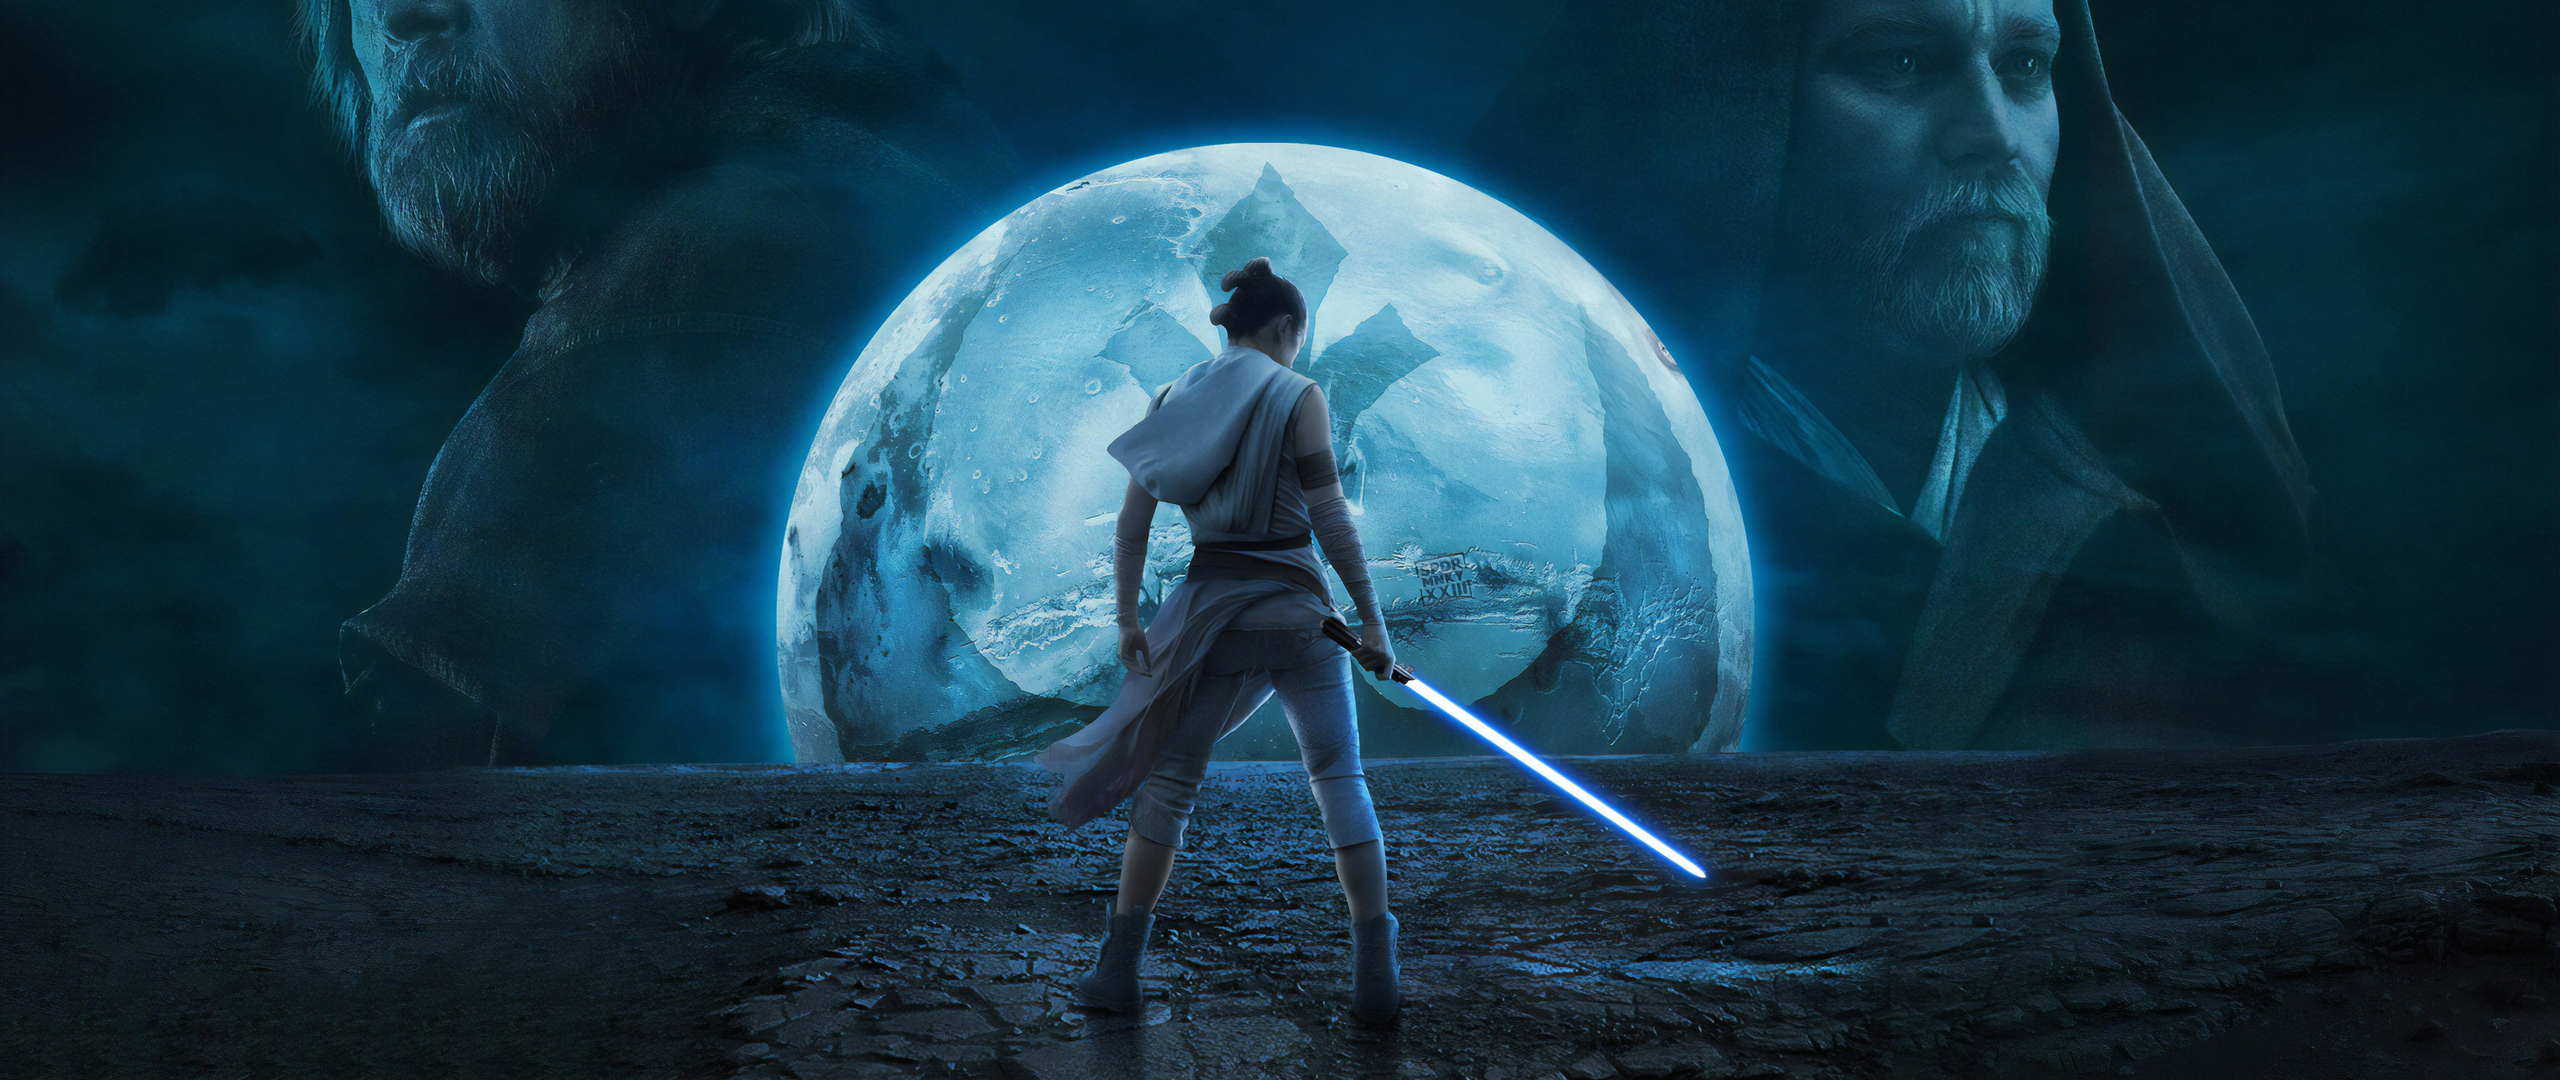 2560x1080 Star Wars The Rise Of Skywalker New 2560x1080 Resolution Hd 4k Wallpapers Images Backgrounds Photos And Pictures